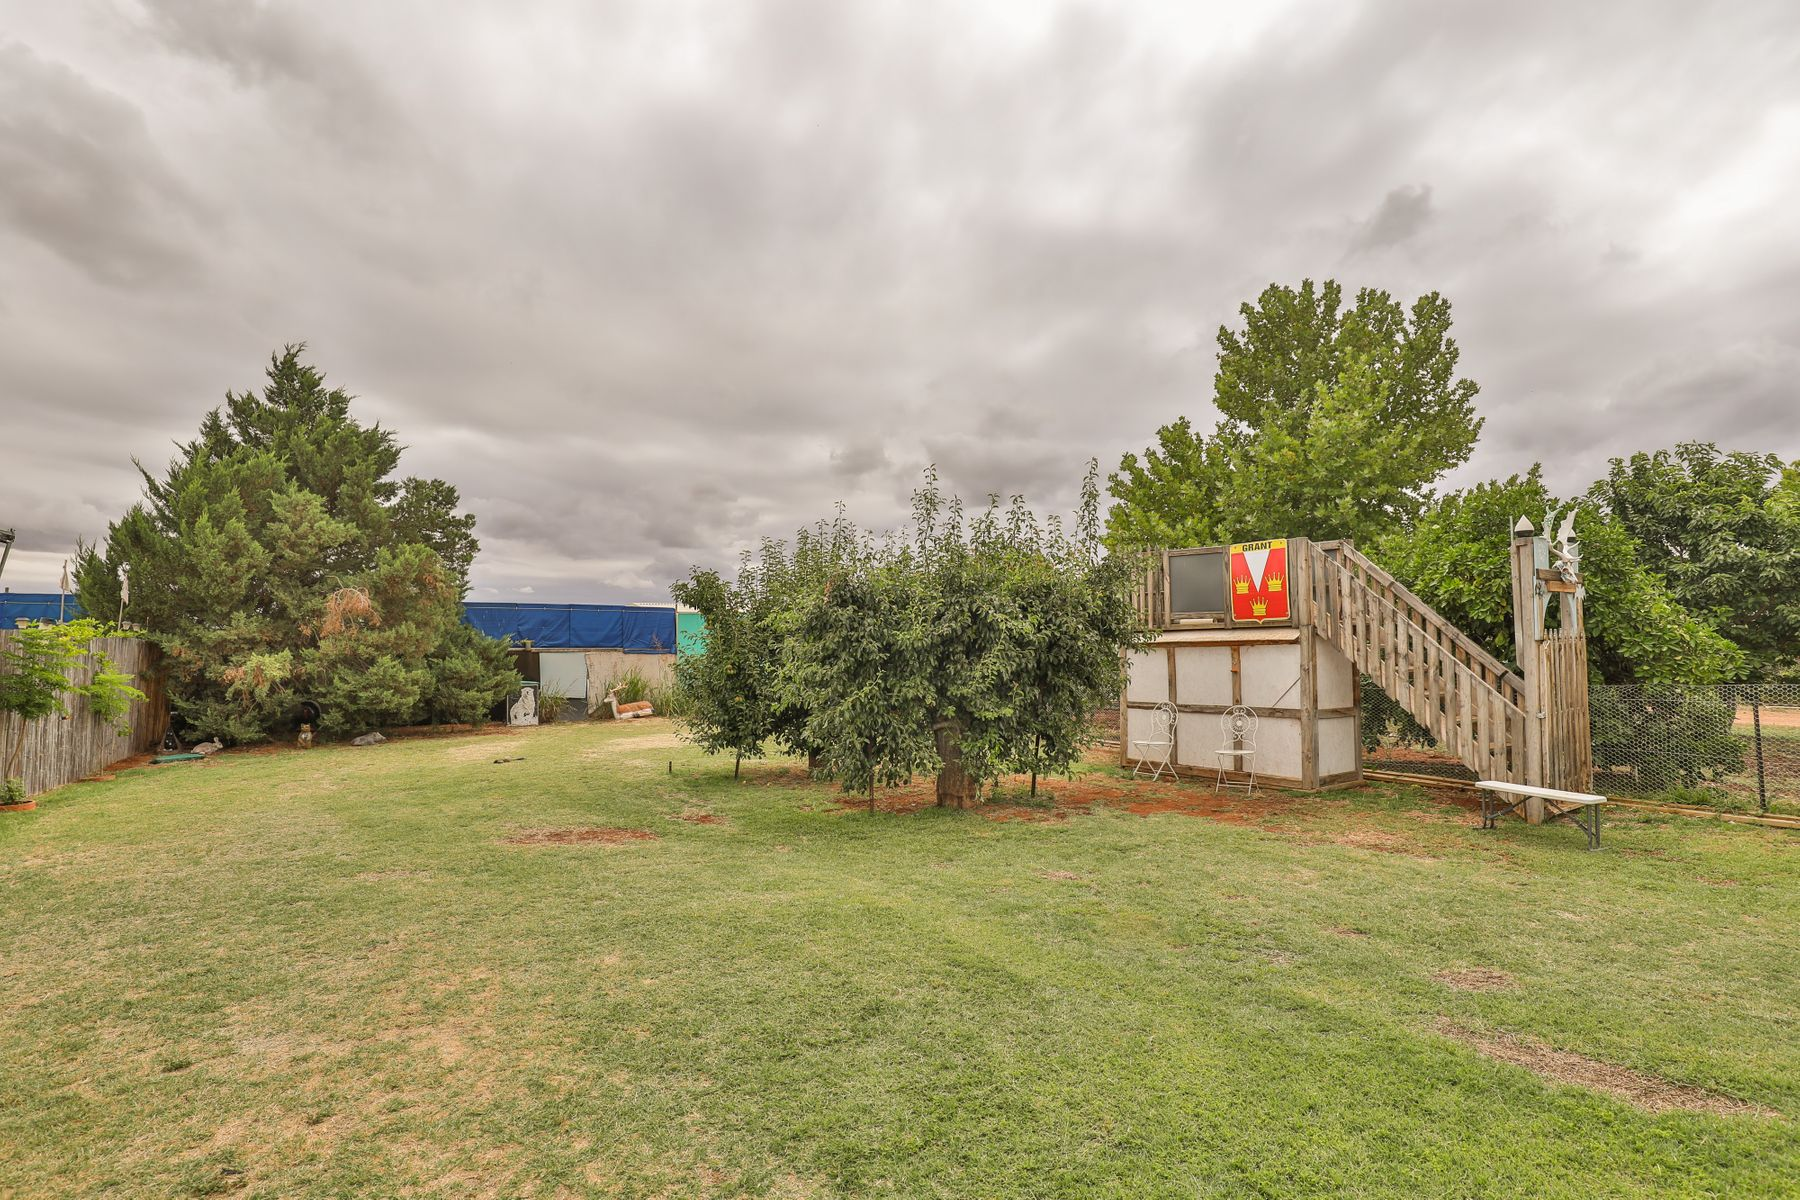 3040 Fifteenth Street, Irymple, VIC 3498